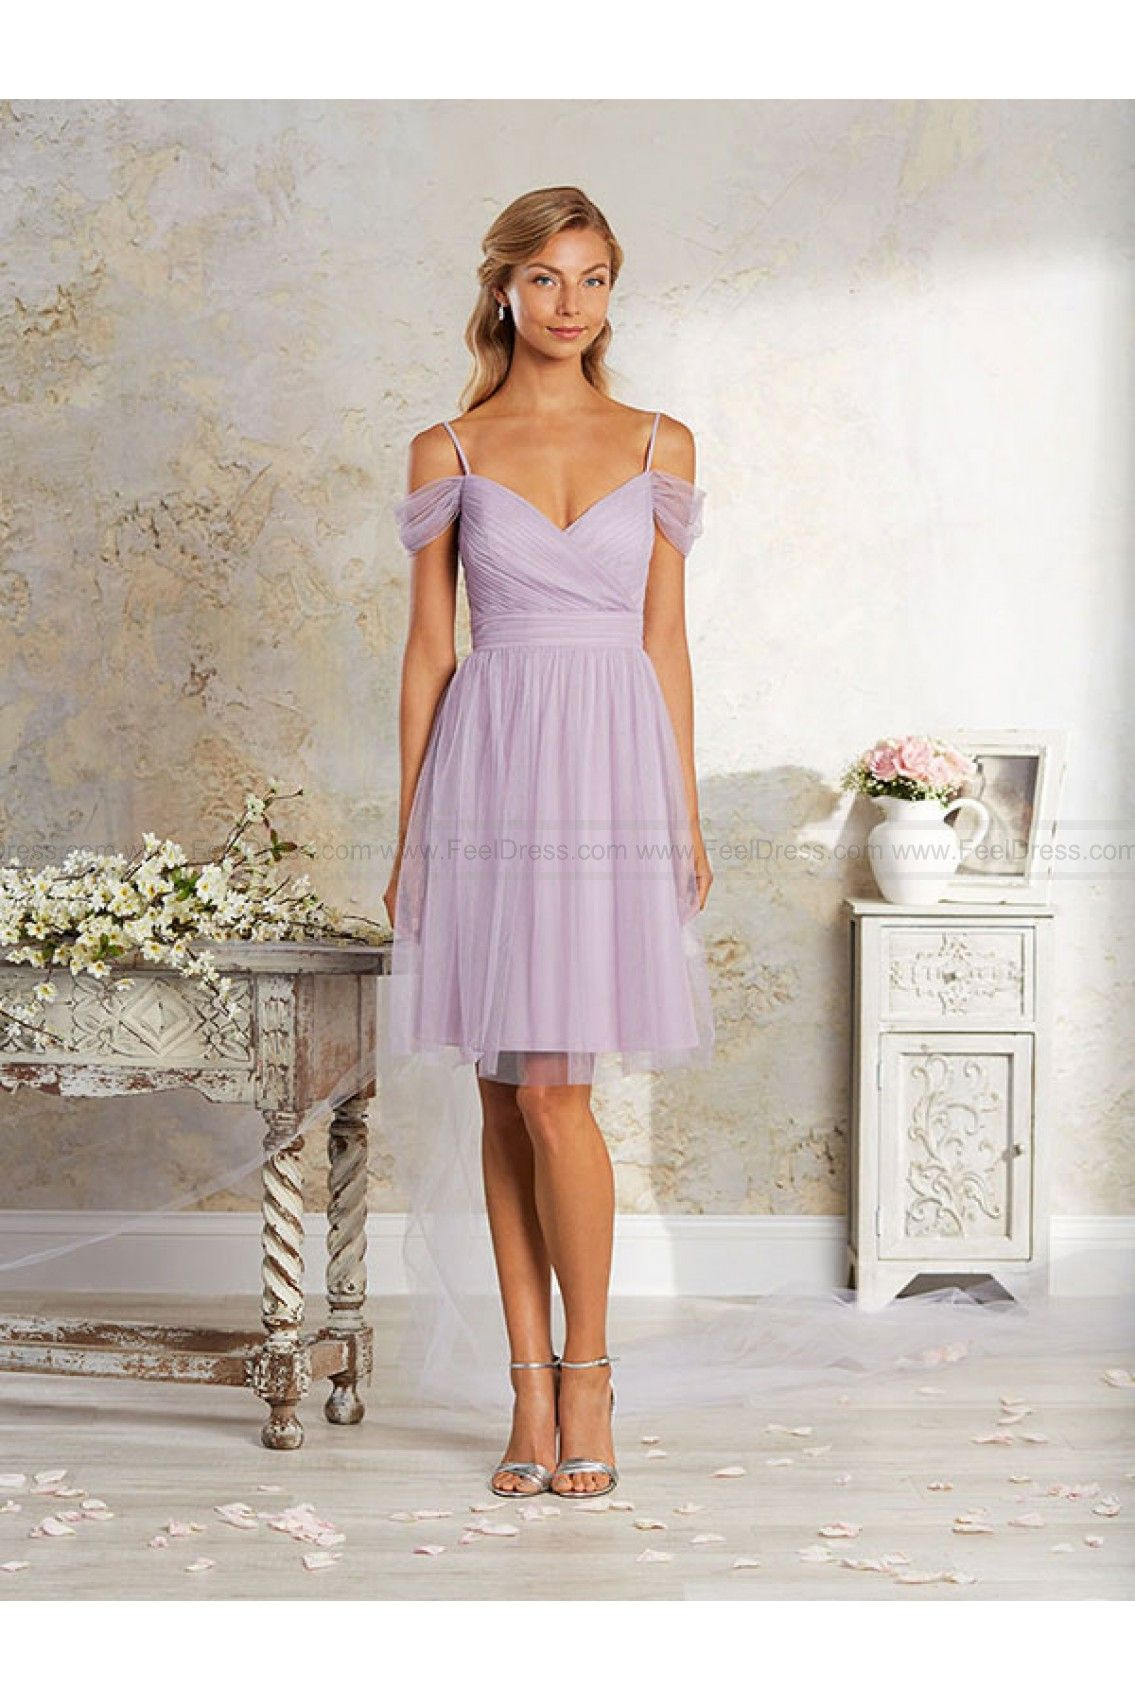 Alfred angelo bridesmaid dress style 8644s new alfred angelo alfred angelo bridesmaid dress style 8644s new purple ombrellifo Gallery